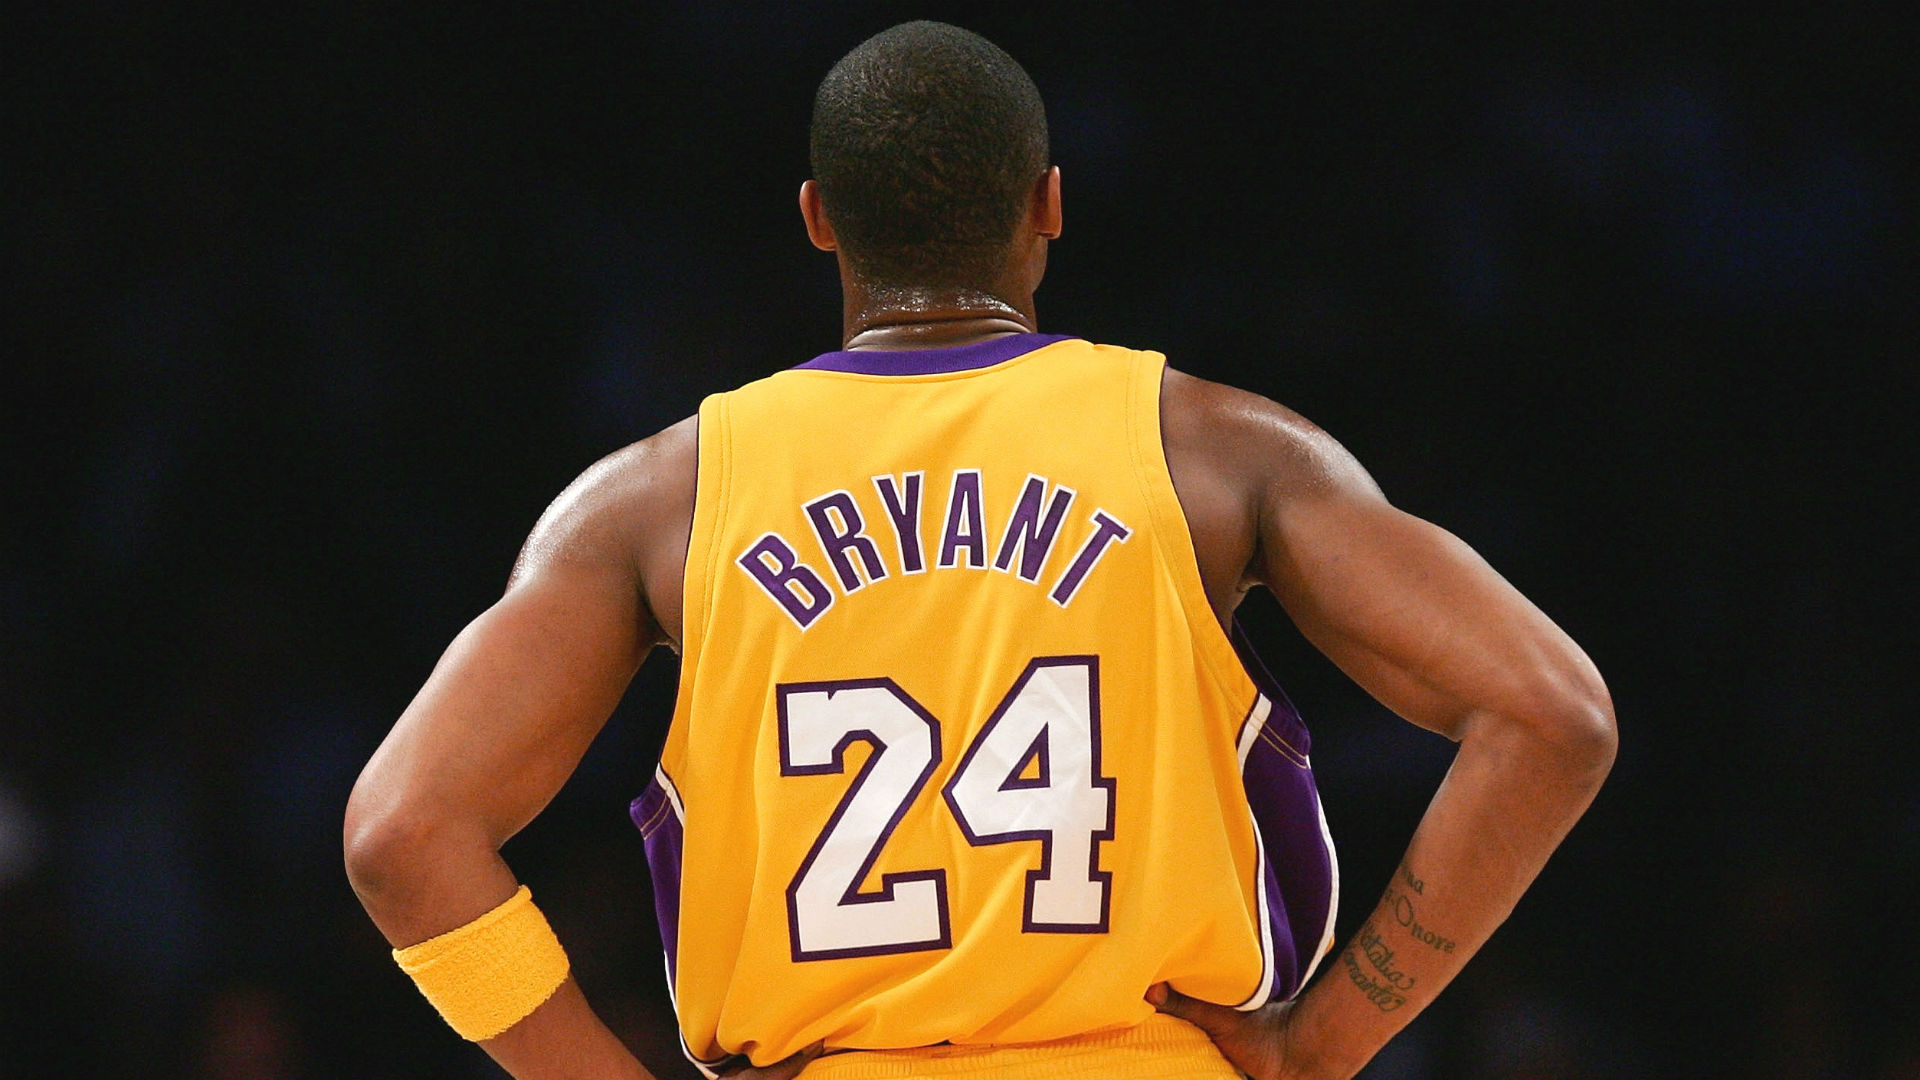 Kobe Bryant Dead At 41 Sports World Pays Tribute To Basketball Legend Sporting News